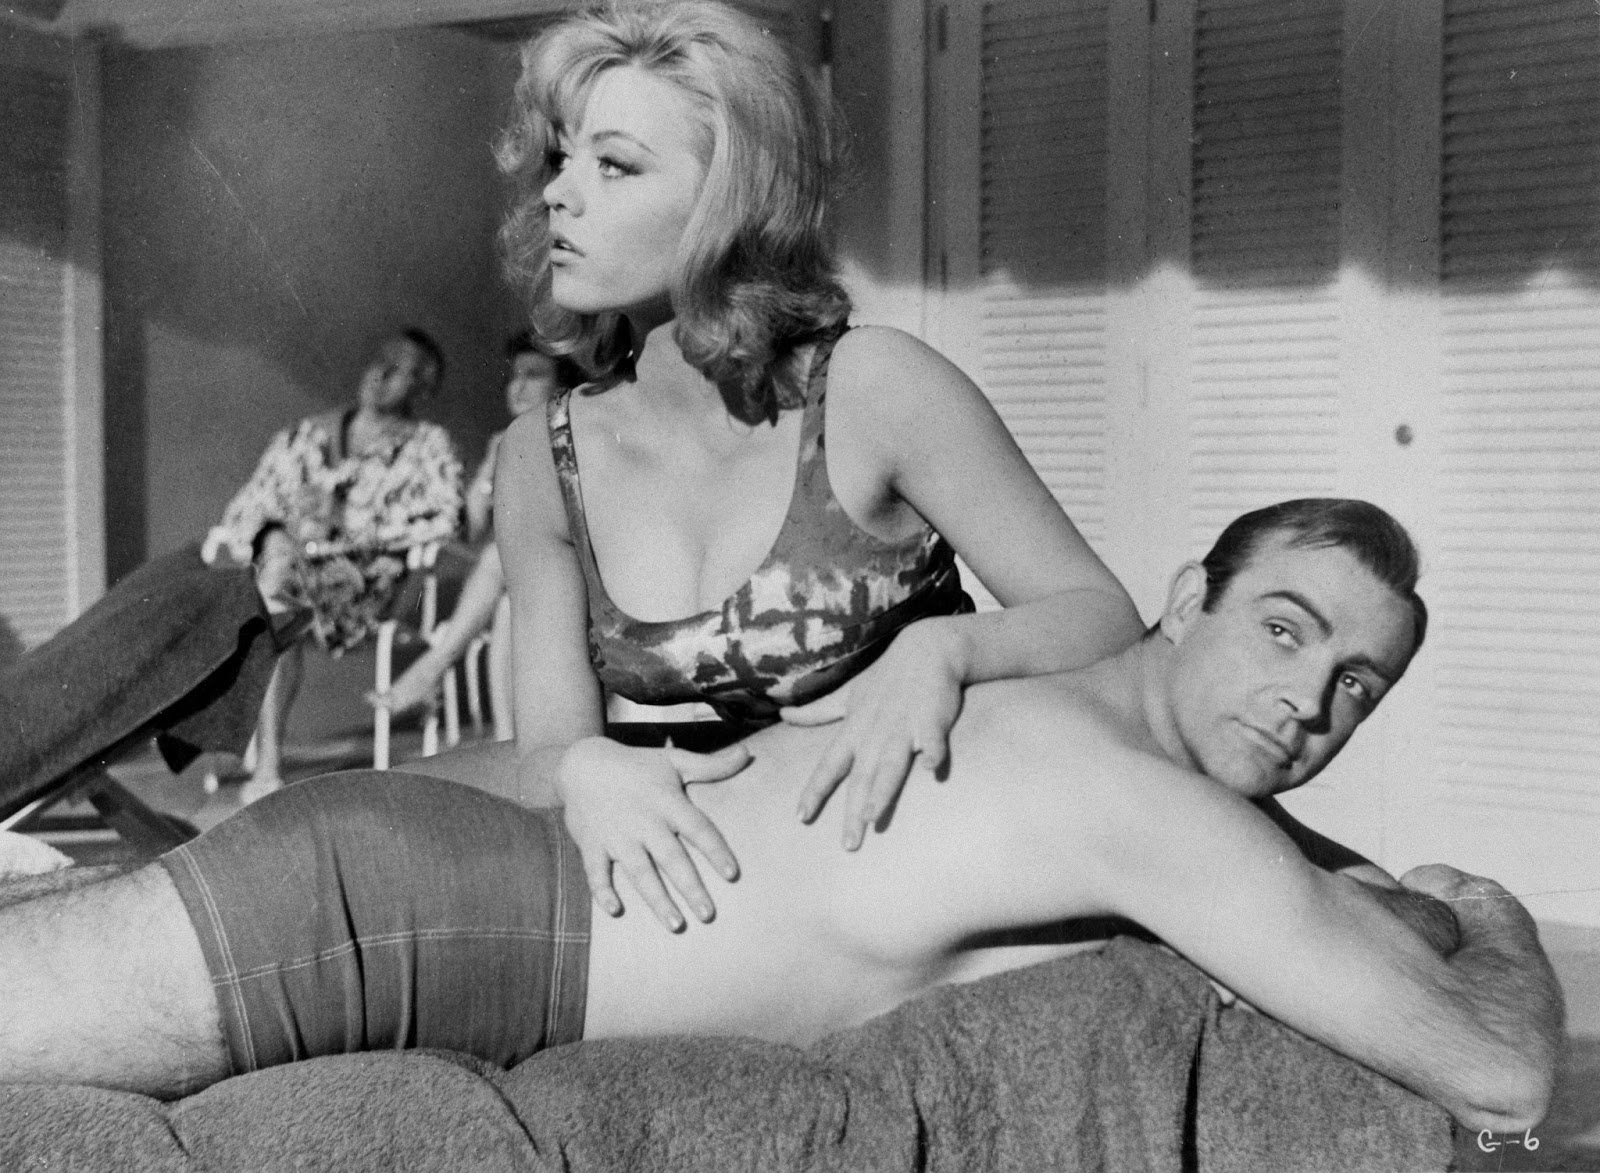 Margaret Nolan appears in the film as Dink, the woman massaging Bond's back in the Fontainebleu Hotel pool scene.